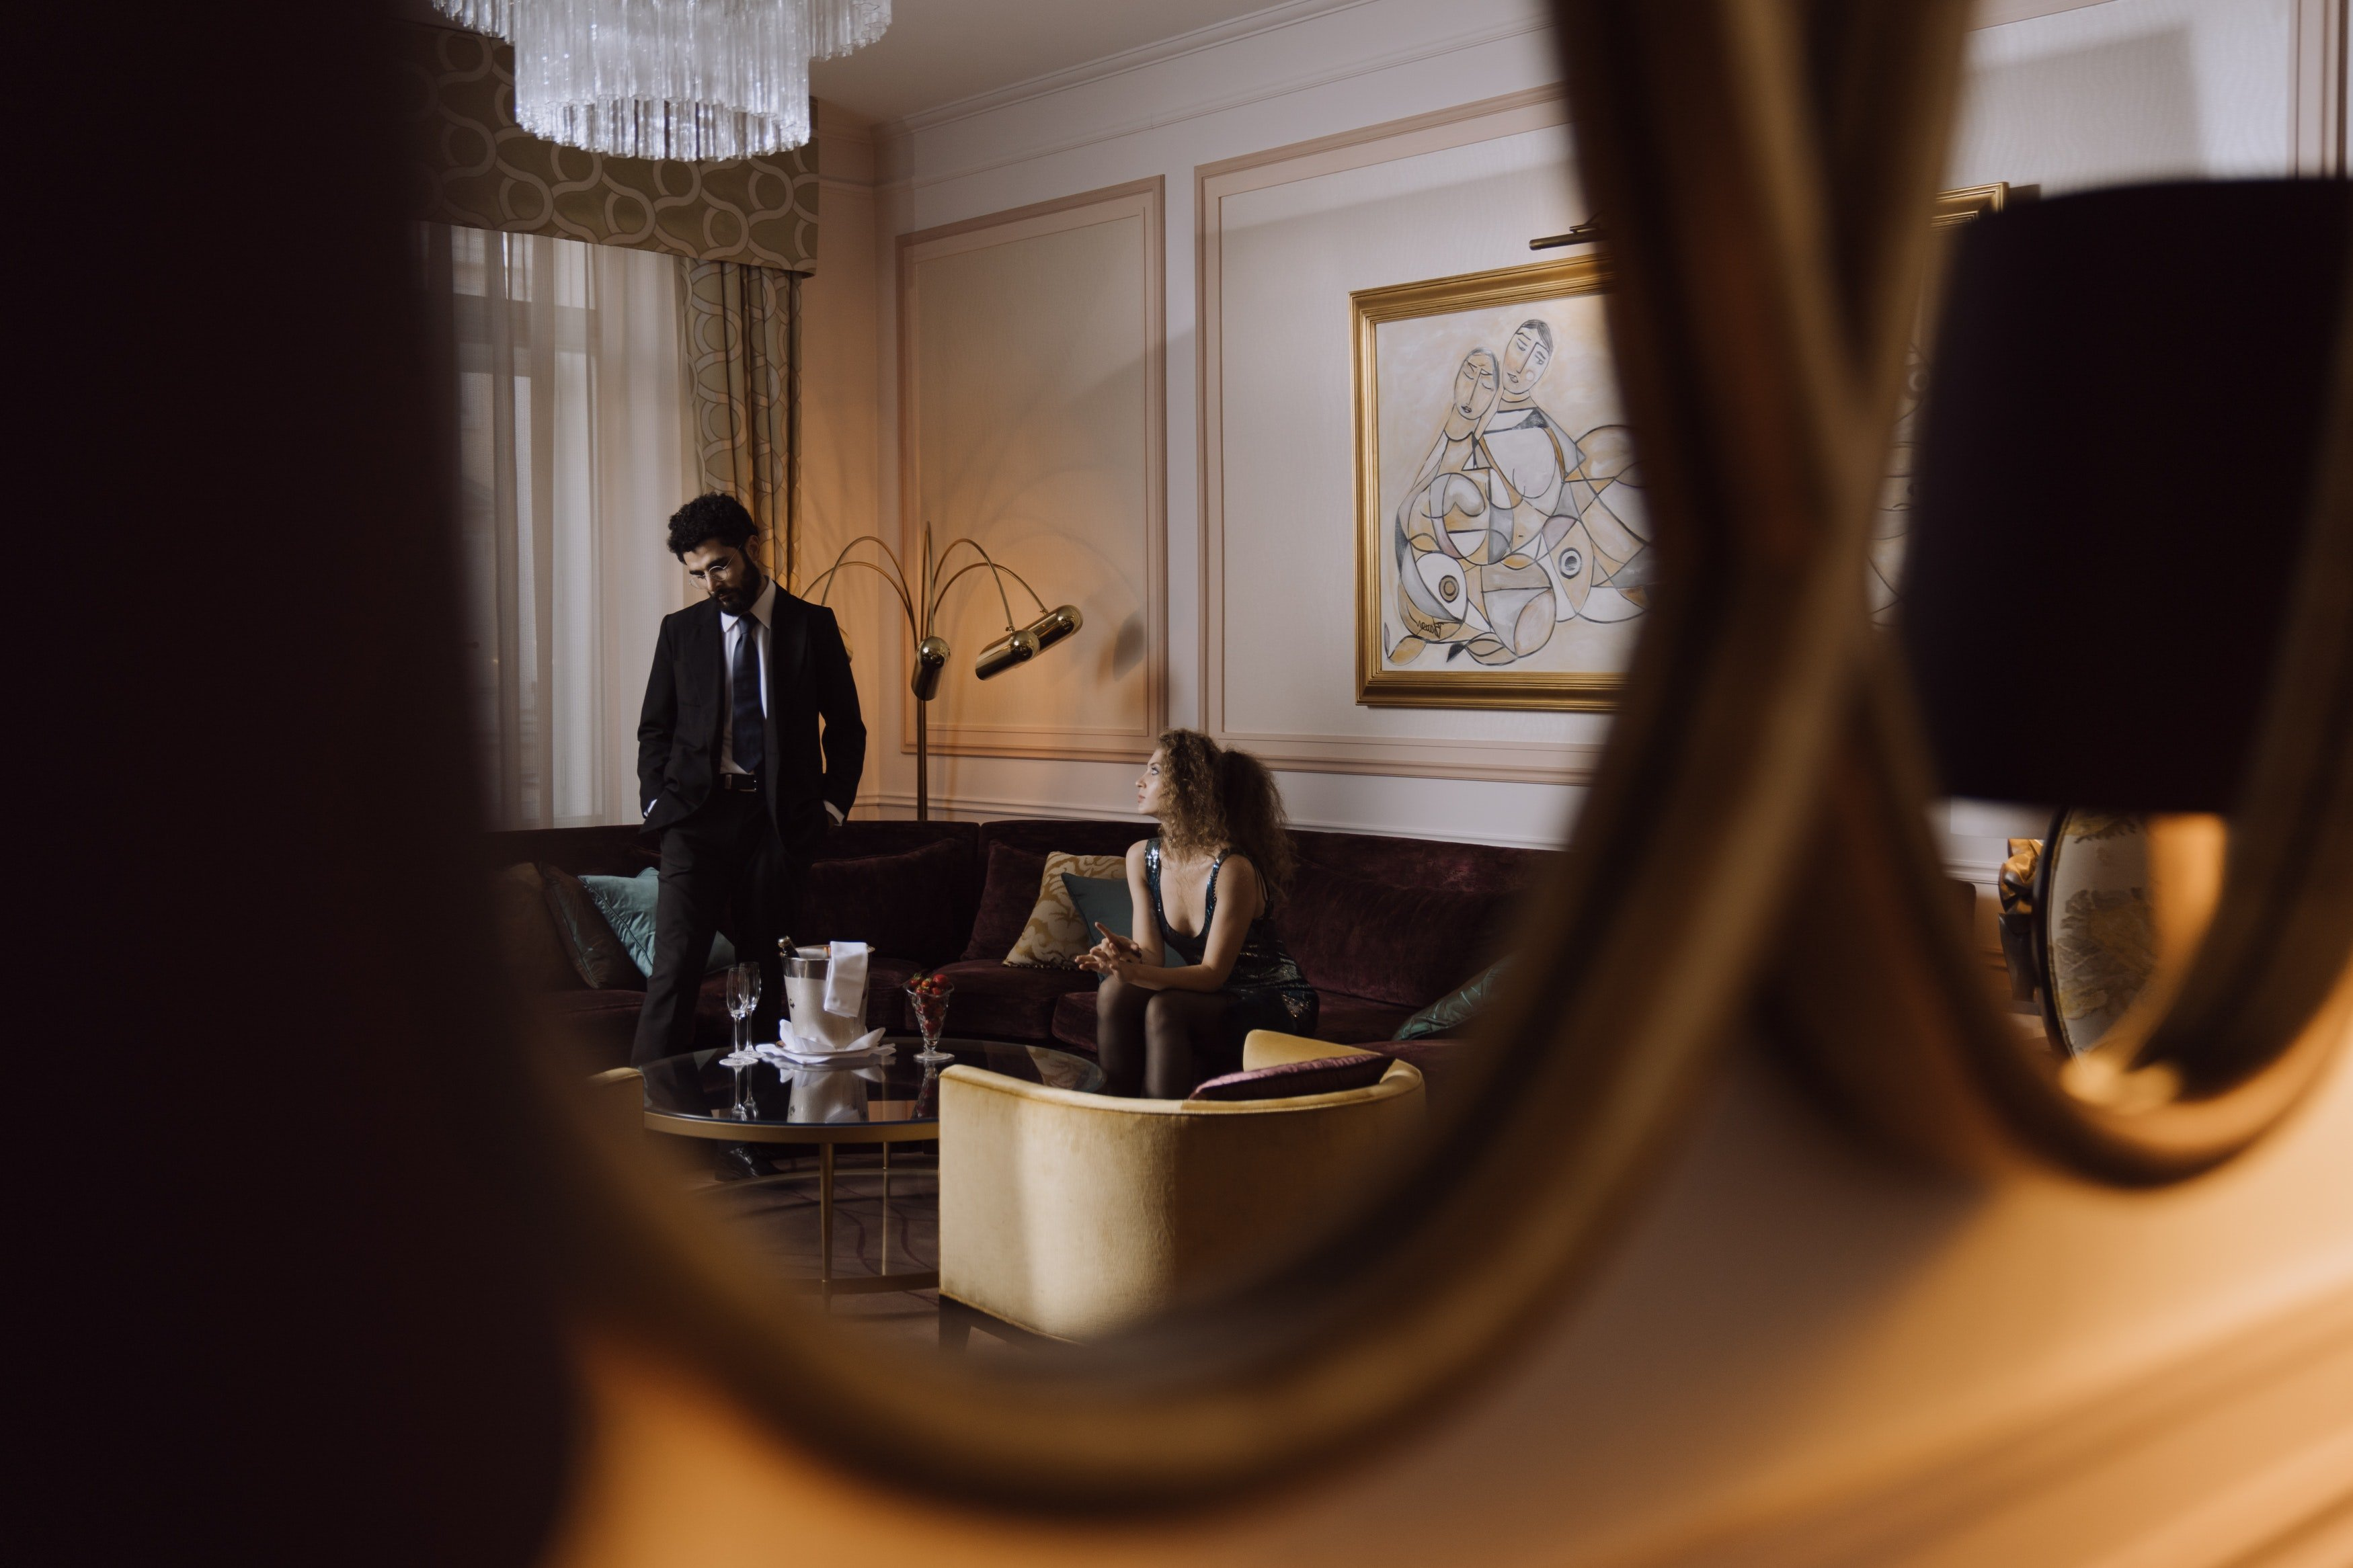 Karen thought about their first night in the hotel   Source: Pexels